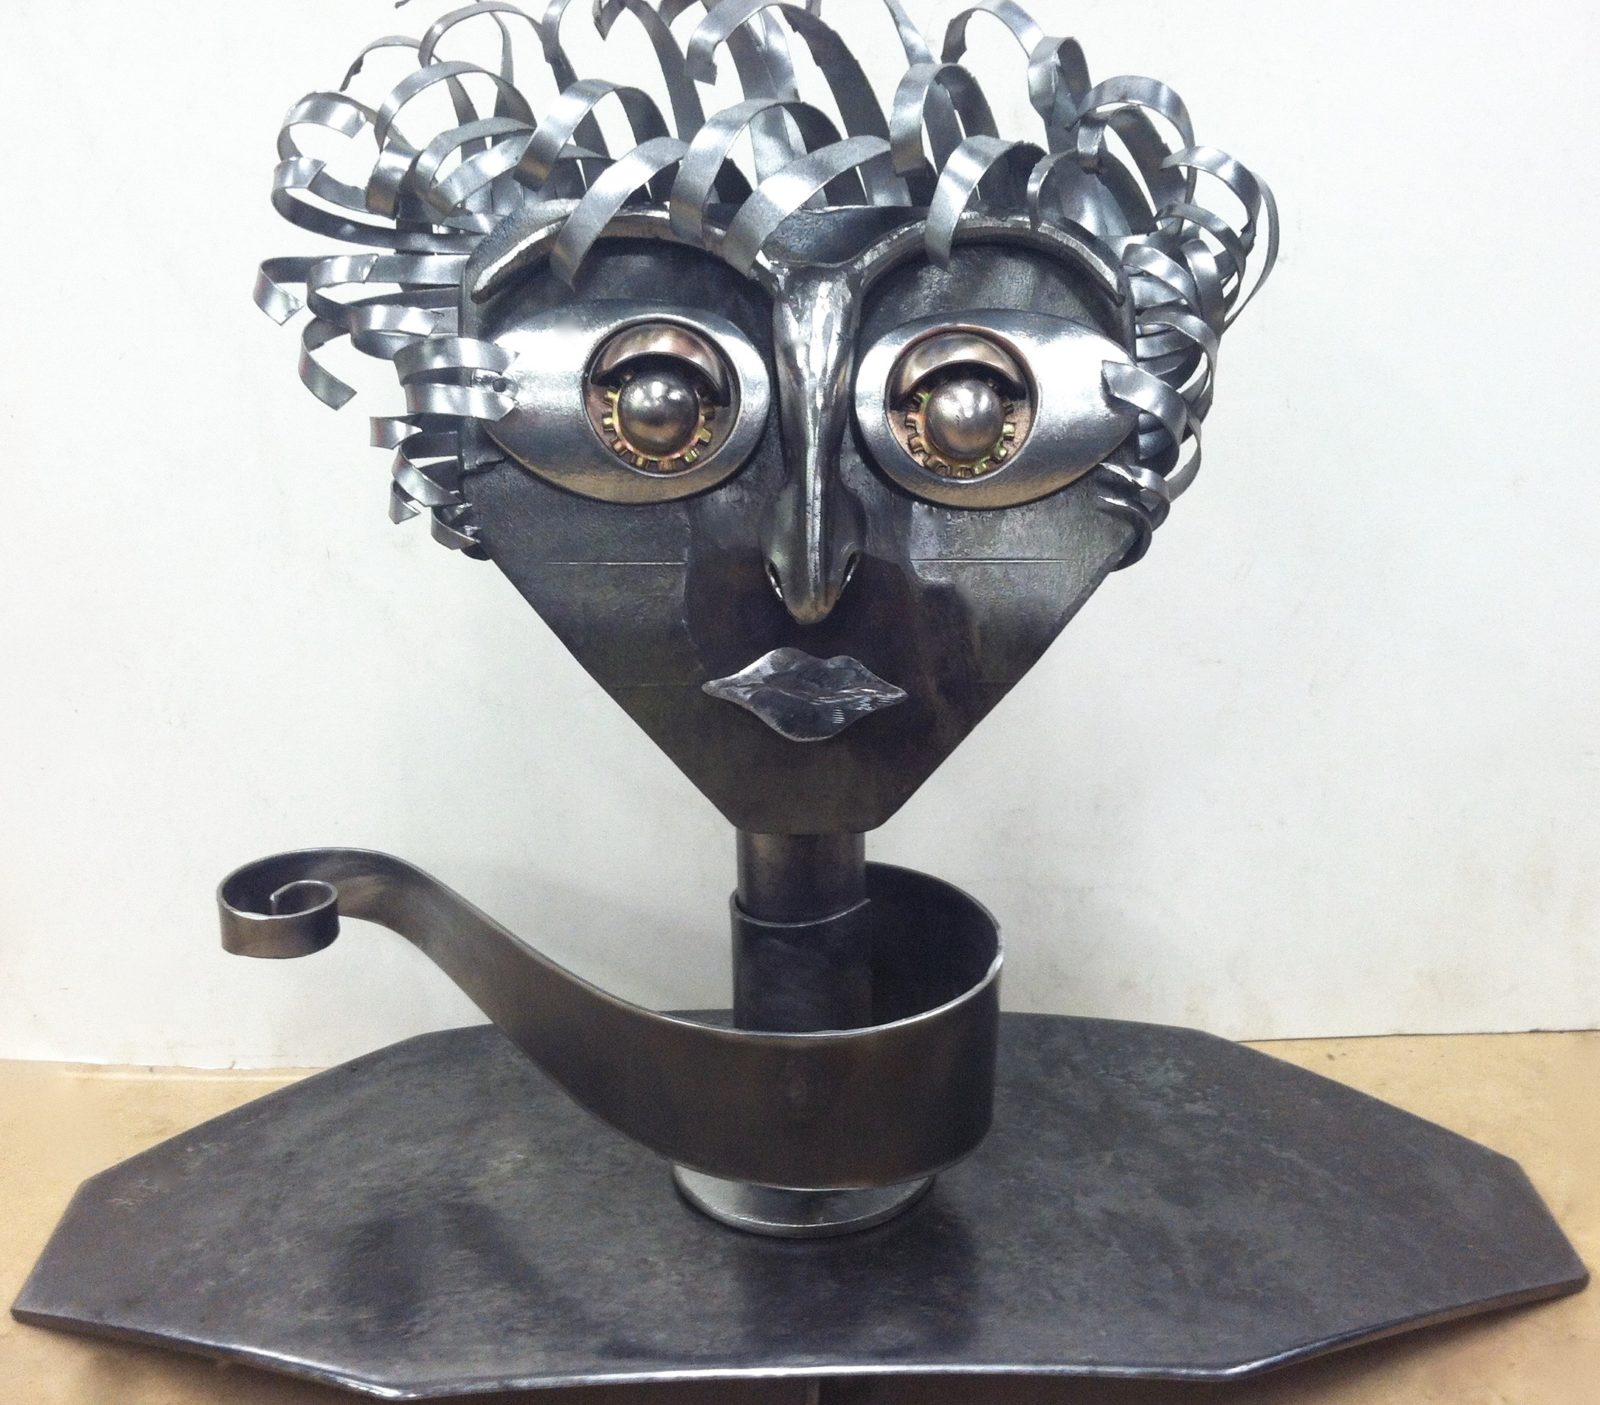 Windy metal sculpture